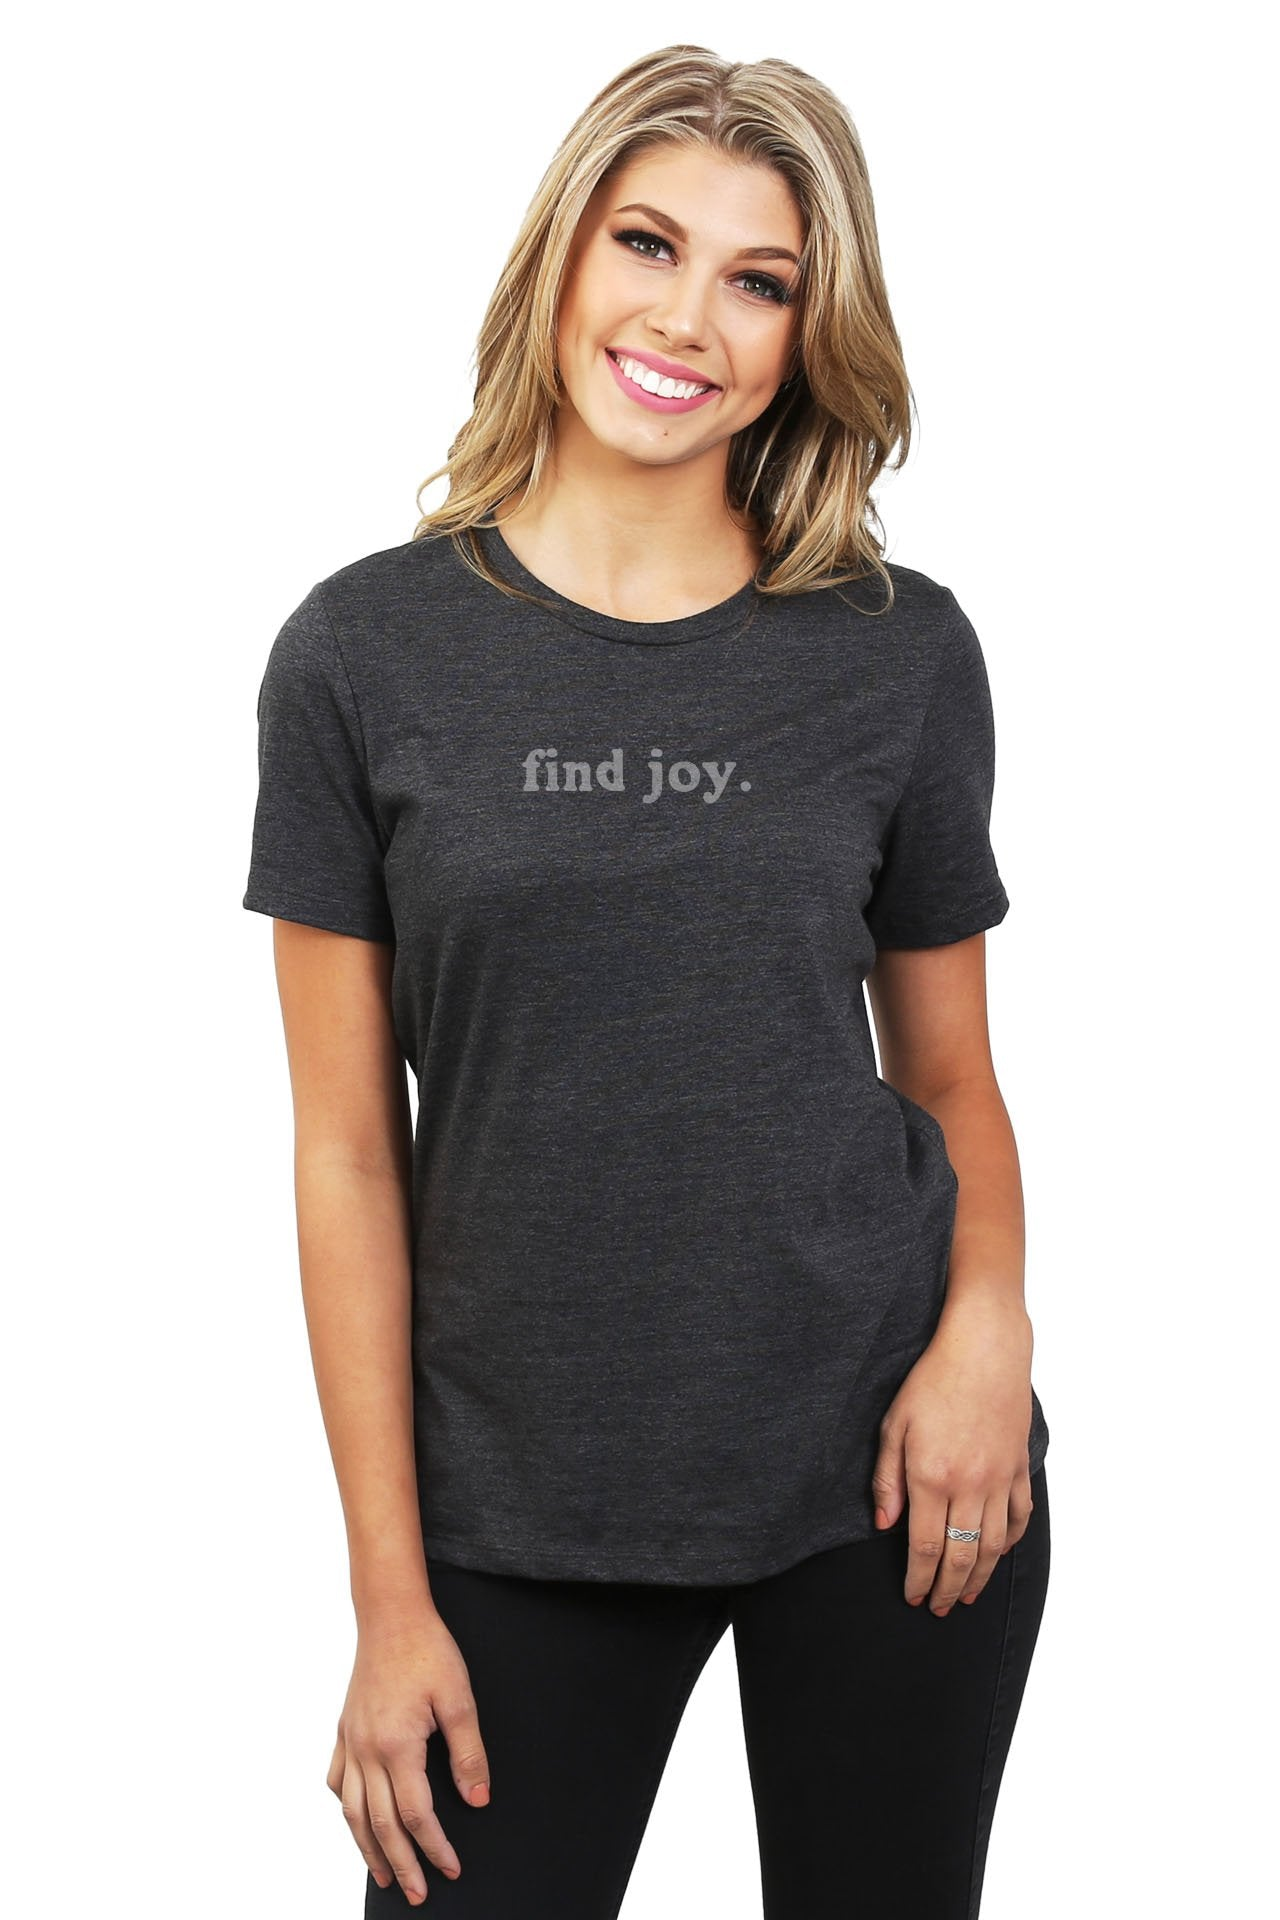 Find Joy - Thread Tank | Stories You Can Wear | T-Shirts, Tank Tops and Sweatshirts